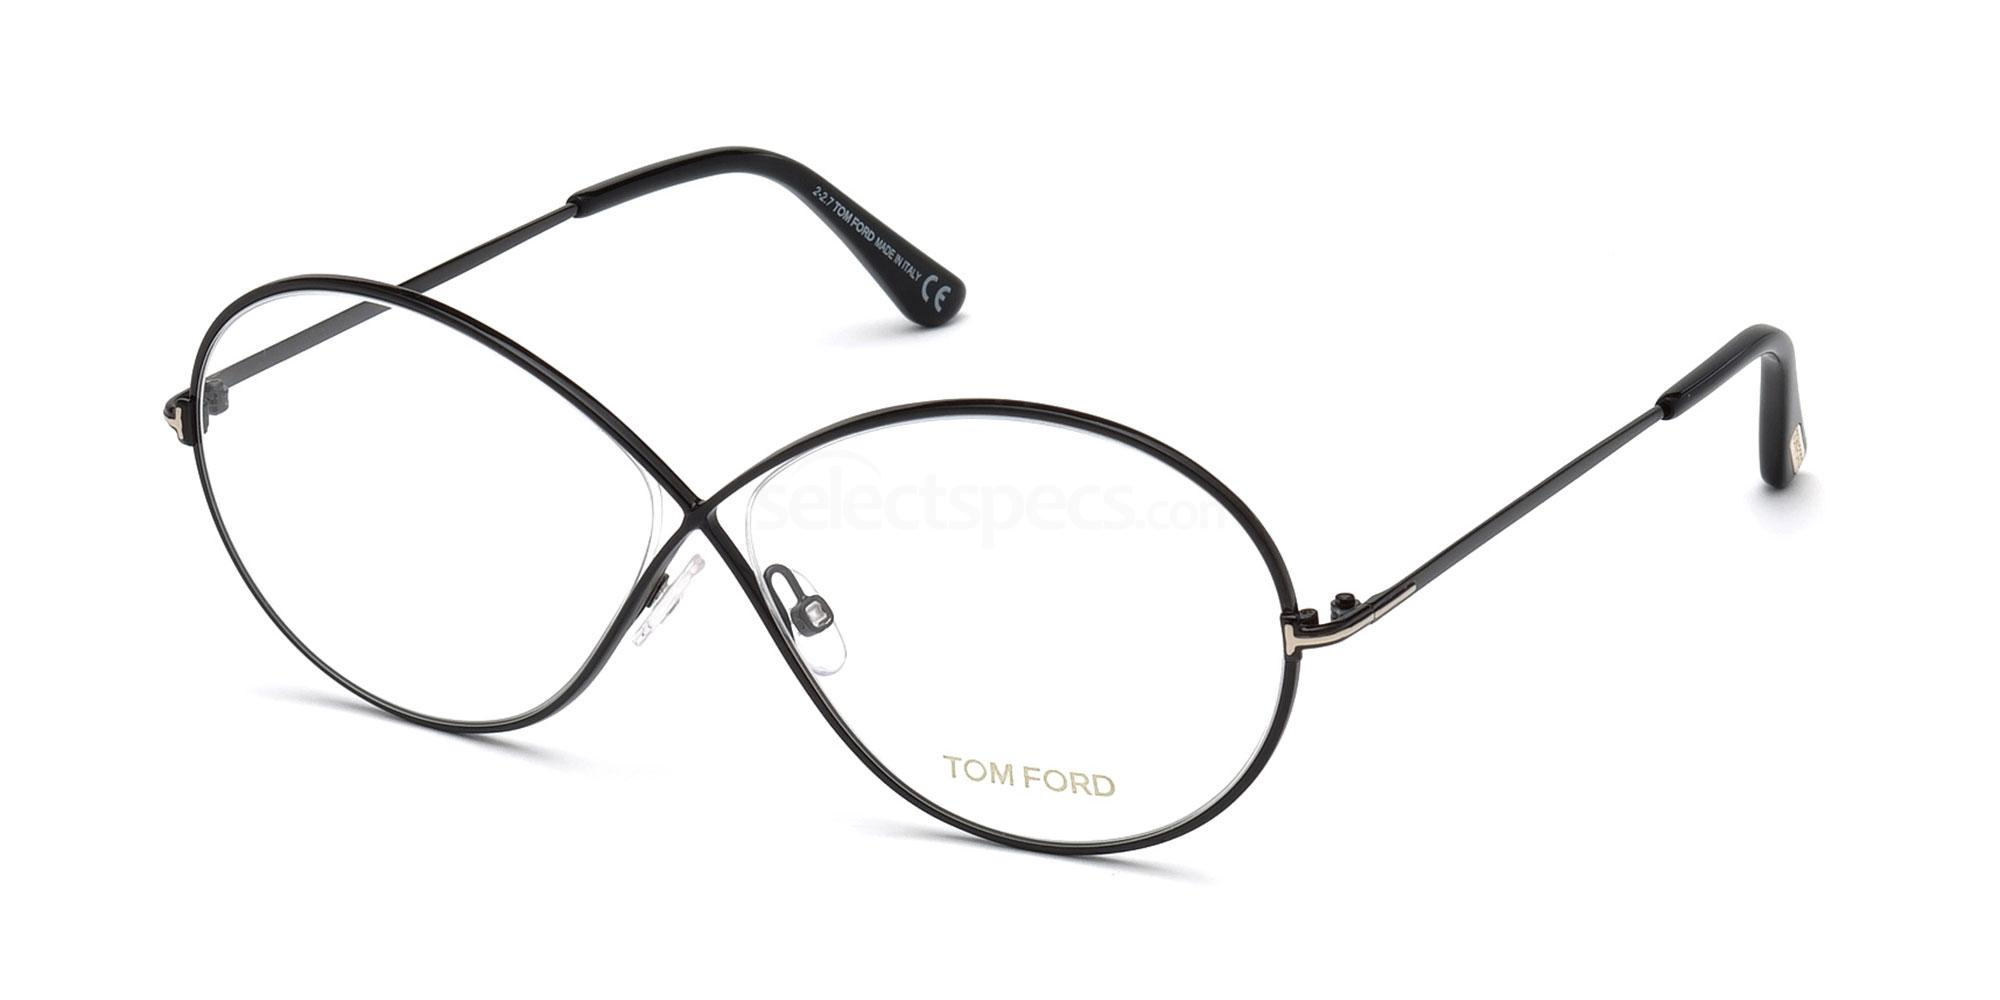 19c2fc1b8c Glasses Trends  What s Hot This Year for Prescription Spectacles ...